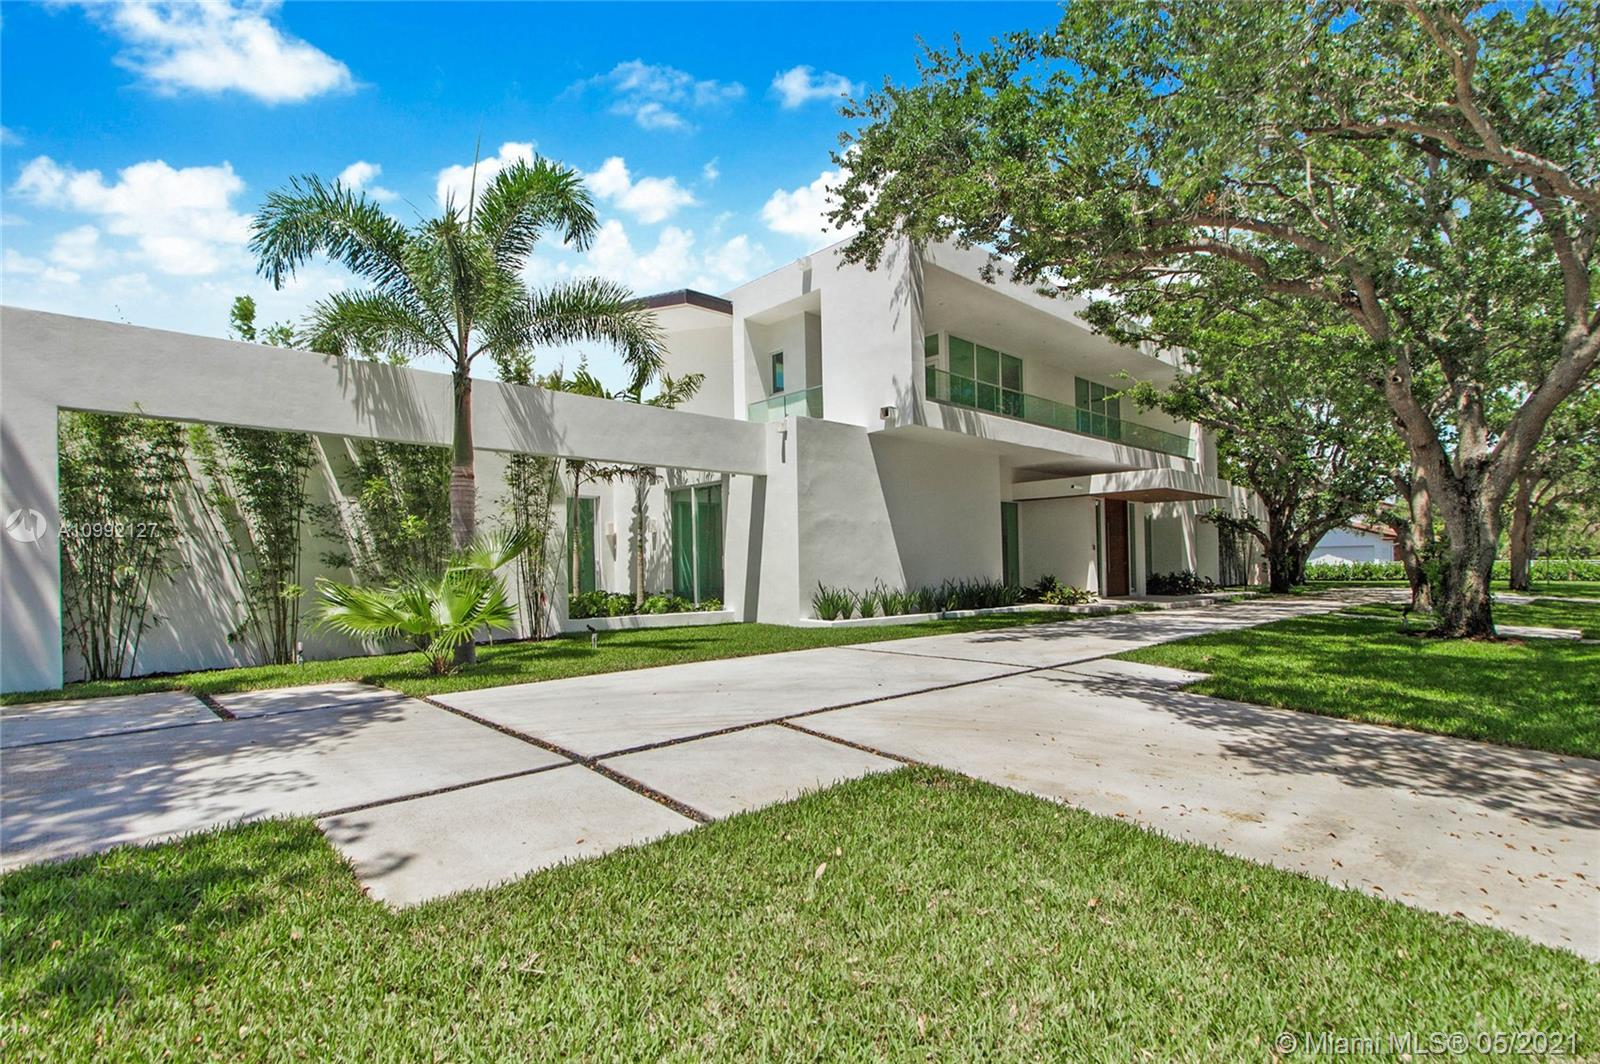 Incomparable luxury at the crossroads of Coral Gables and Pinecrest. This brand new custom estate features flawless contemporary design from renowned architect, Giorgio Balli. The open-concept, 9,043 total SF interior boasts 7 bedrooms, 6 bathrooms, 2 half bathrooms, soaring 14'-high ceilings and impact-resistant windows, wood and Imported Italian marble floors, and custom Italkraft kitchen and baths. The ground level features an owner's suite, 2 guest suites, 2,200-bottle wine cellar, the finest contemporary finishes, Elan Smarthome System & ample storage. The outdoor spaces mimic the sleek & sophisticated design of the interior and offer a 44' saltwater pool, 300+ SF covered poolside terrace & summer kitchen...all on nearly an acre of lush grounds. Experience the new standard of luxury!